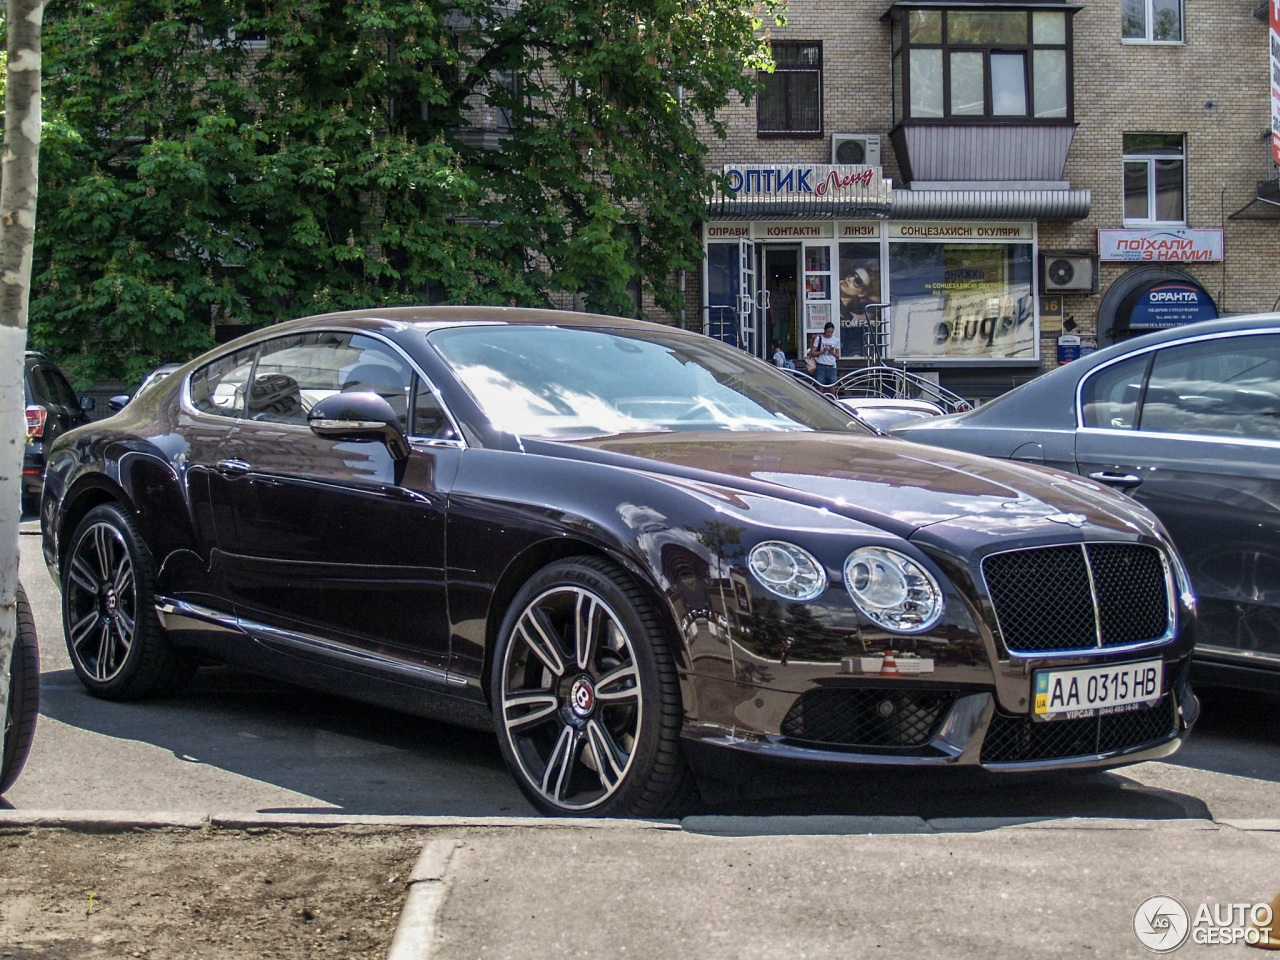 bentley continental gt v8 1 june 2017 autogespot. Black Bedroom Furniture Sets. Home Design Ideas